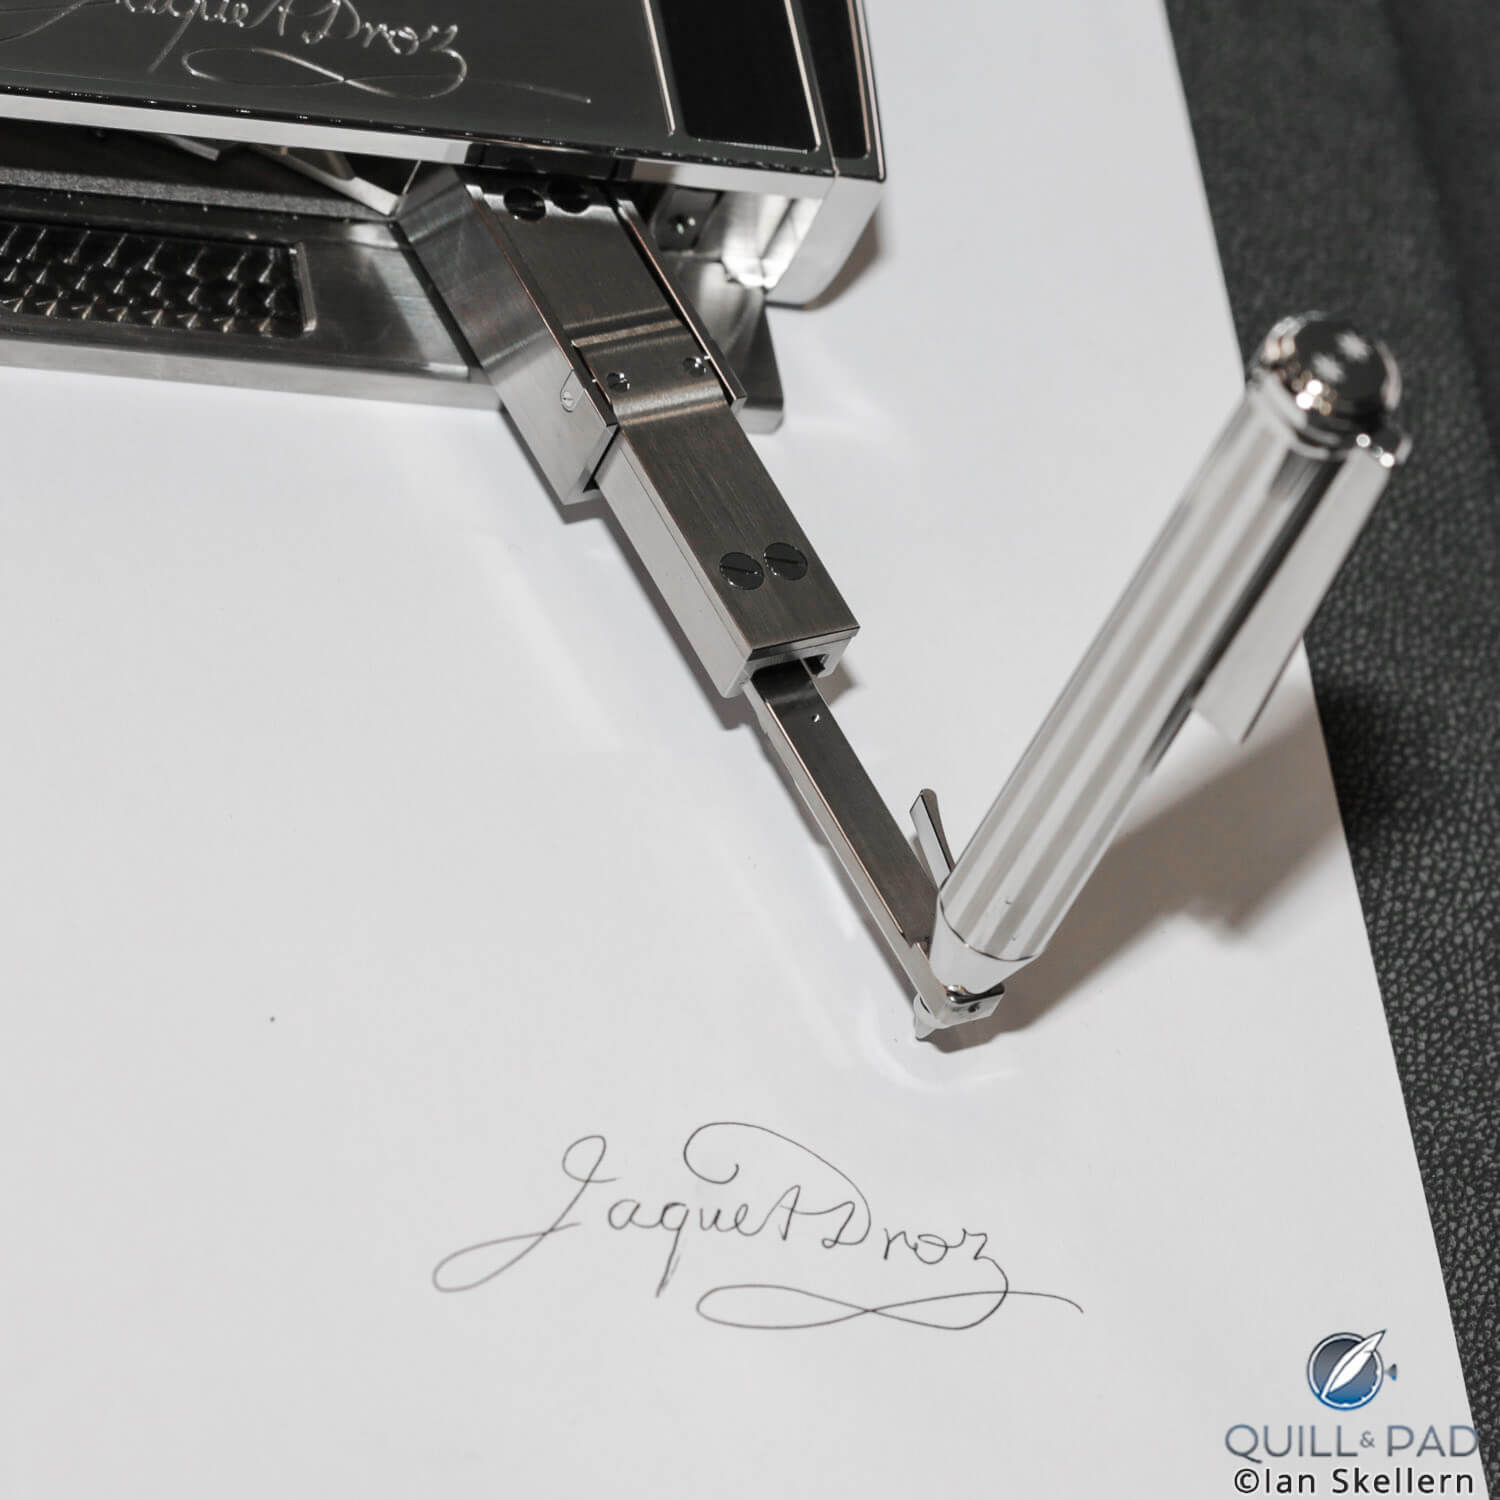 Stylus of the Jaquet Droz Signing Machine